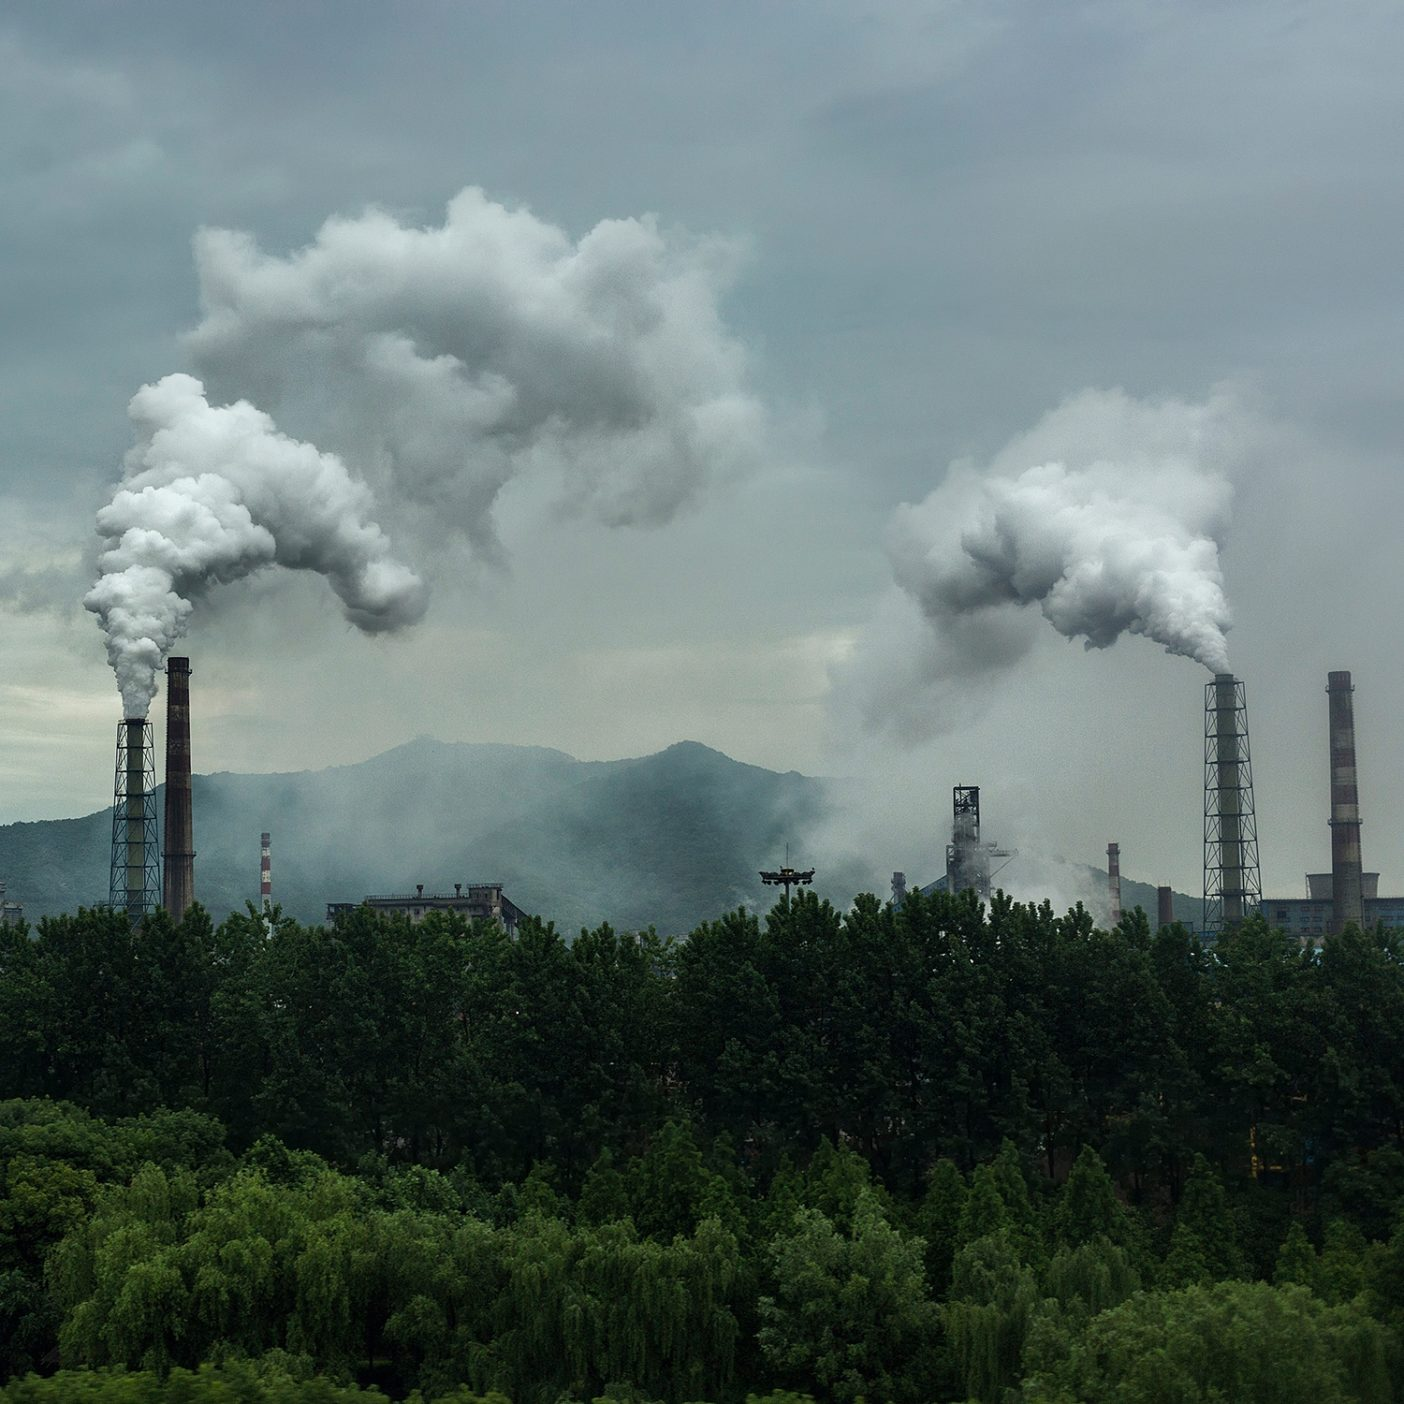 The clothing industry generates up to 10% of global emissions every year, contributing to the climate crisis. Patagonia is committed to lowering our impact and a big part of that is talking to our partners across the supply chain about switching to renewable energy sources. Smoke coming from industry in Hangzhou, China. Photo: Xia Yuan/Getty Images